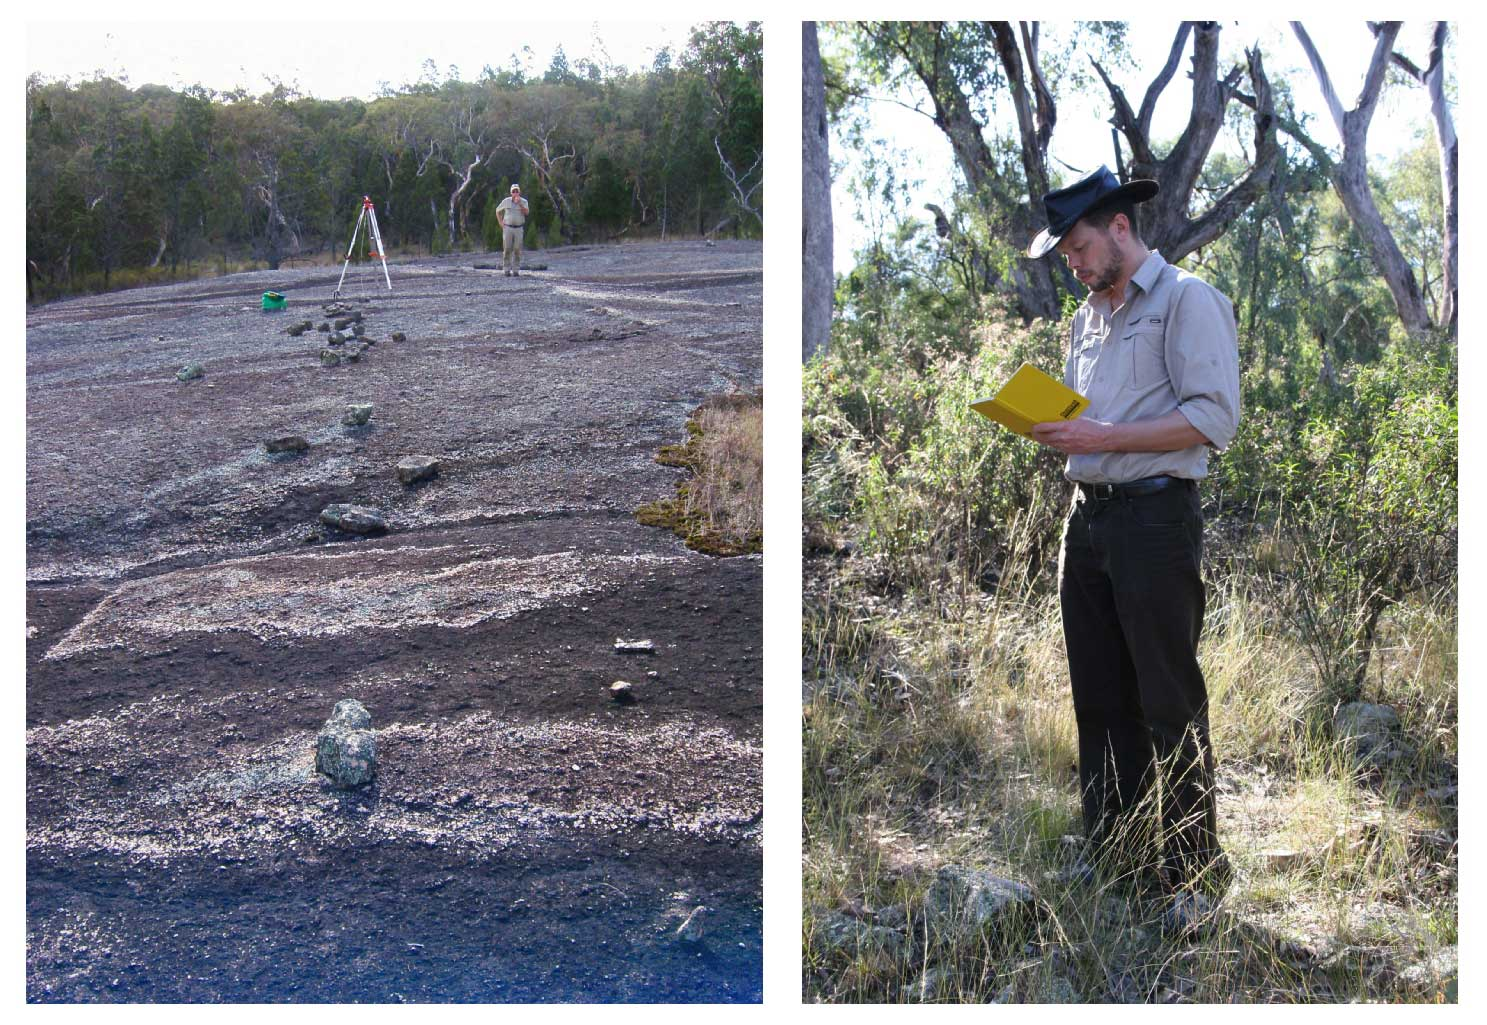 Robert Fuller surveys a stone arrangement in Armidale, NSW (left) and Duane Hamacher examines a small stone circle at Dungowan, NSW (right) (photographs courtesy of D. Hamacher and T. Britton).